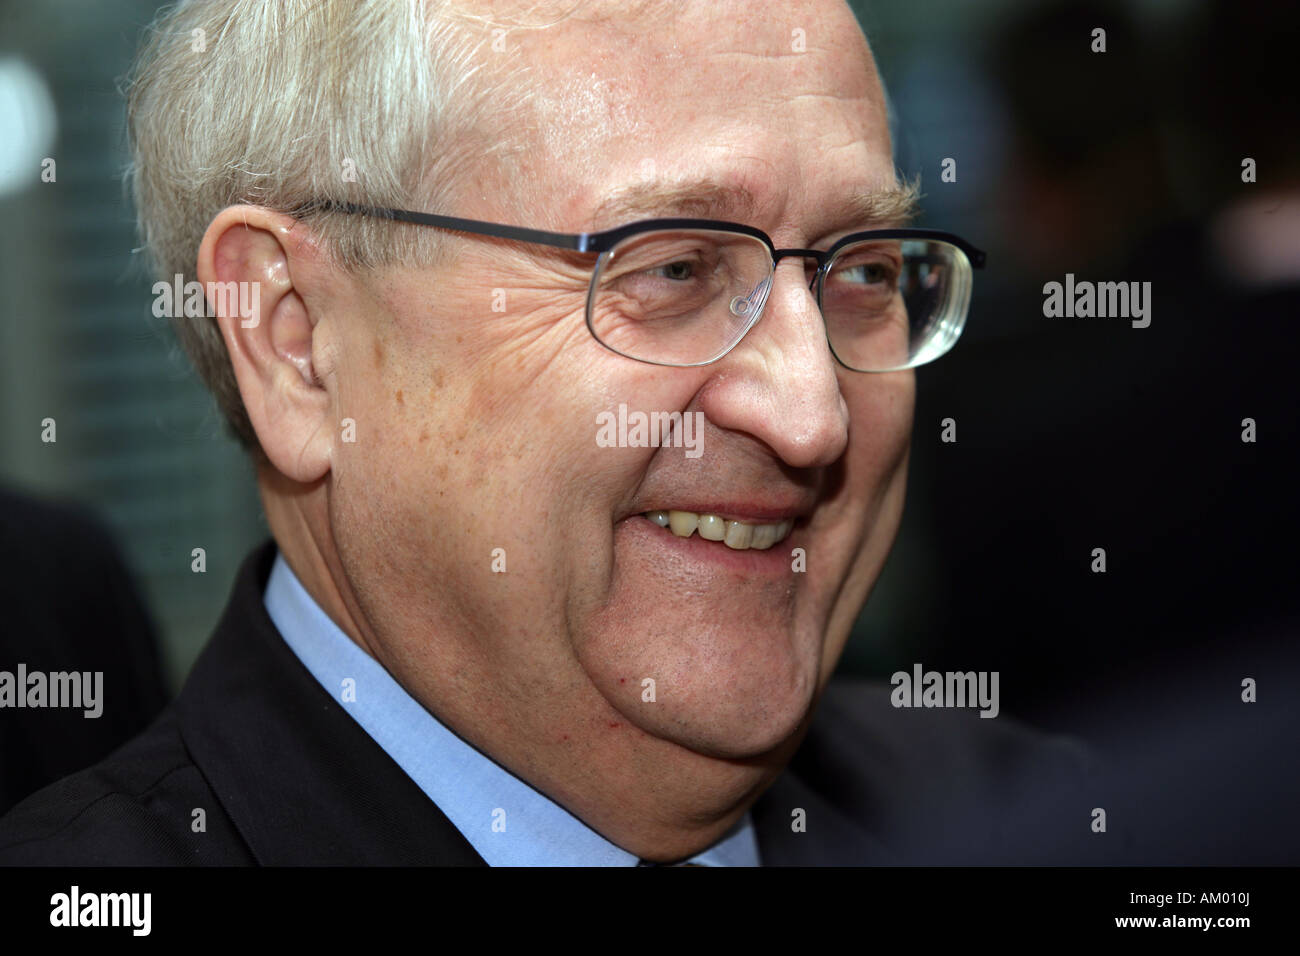 Rainer Bruederle, chairman of the liberal democrat party (FDP) - Stock Image